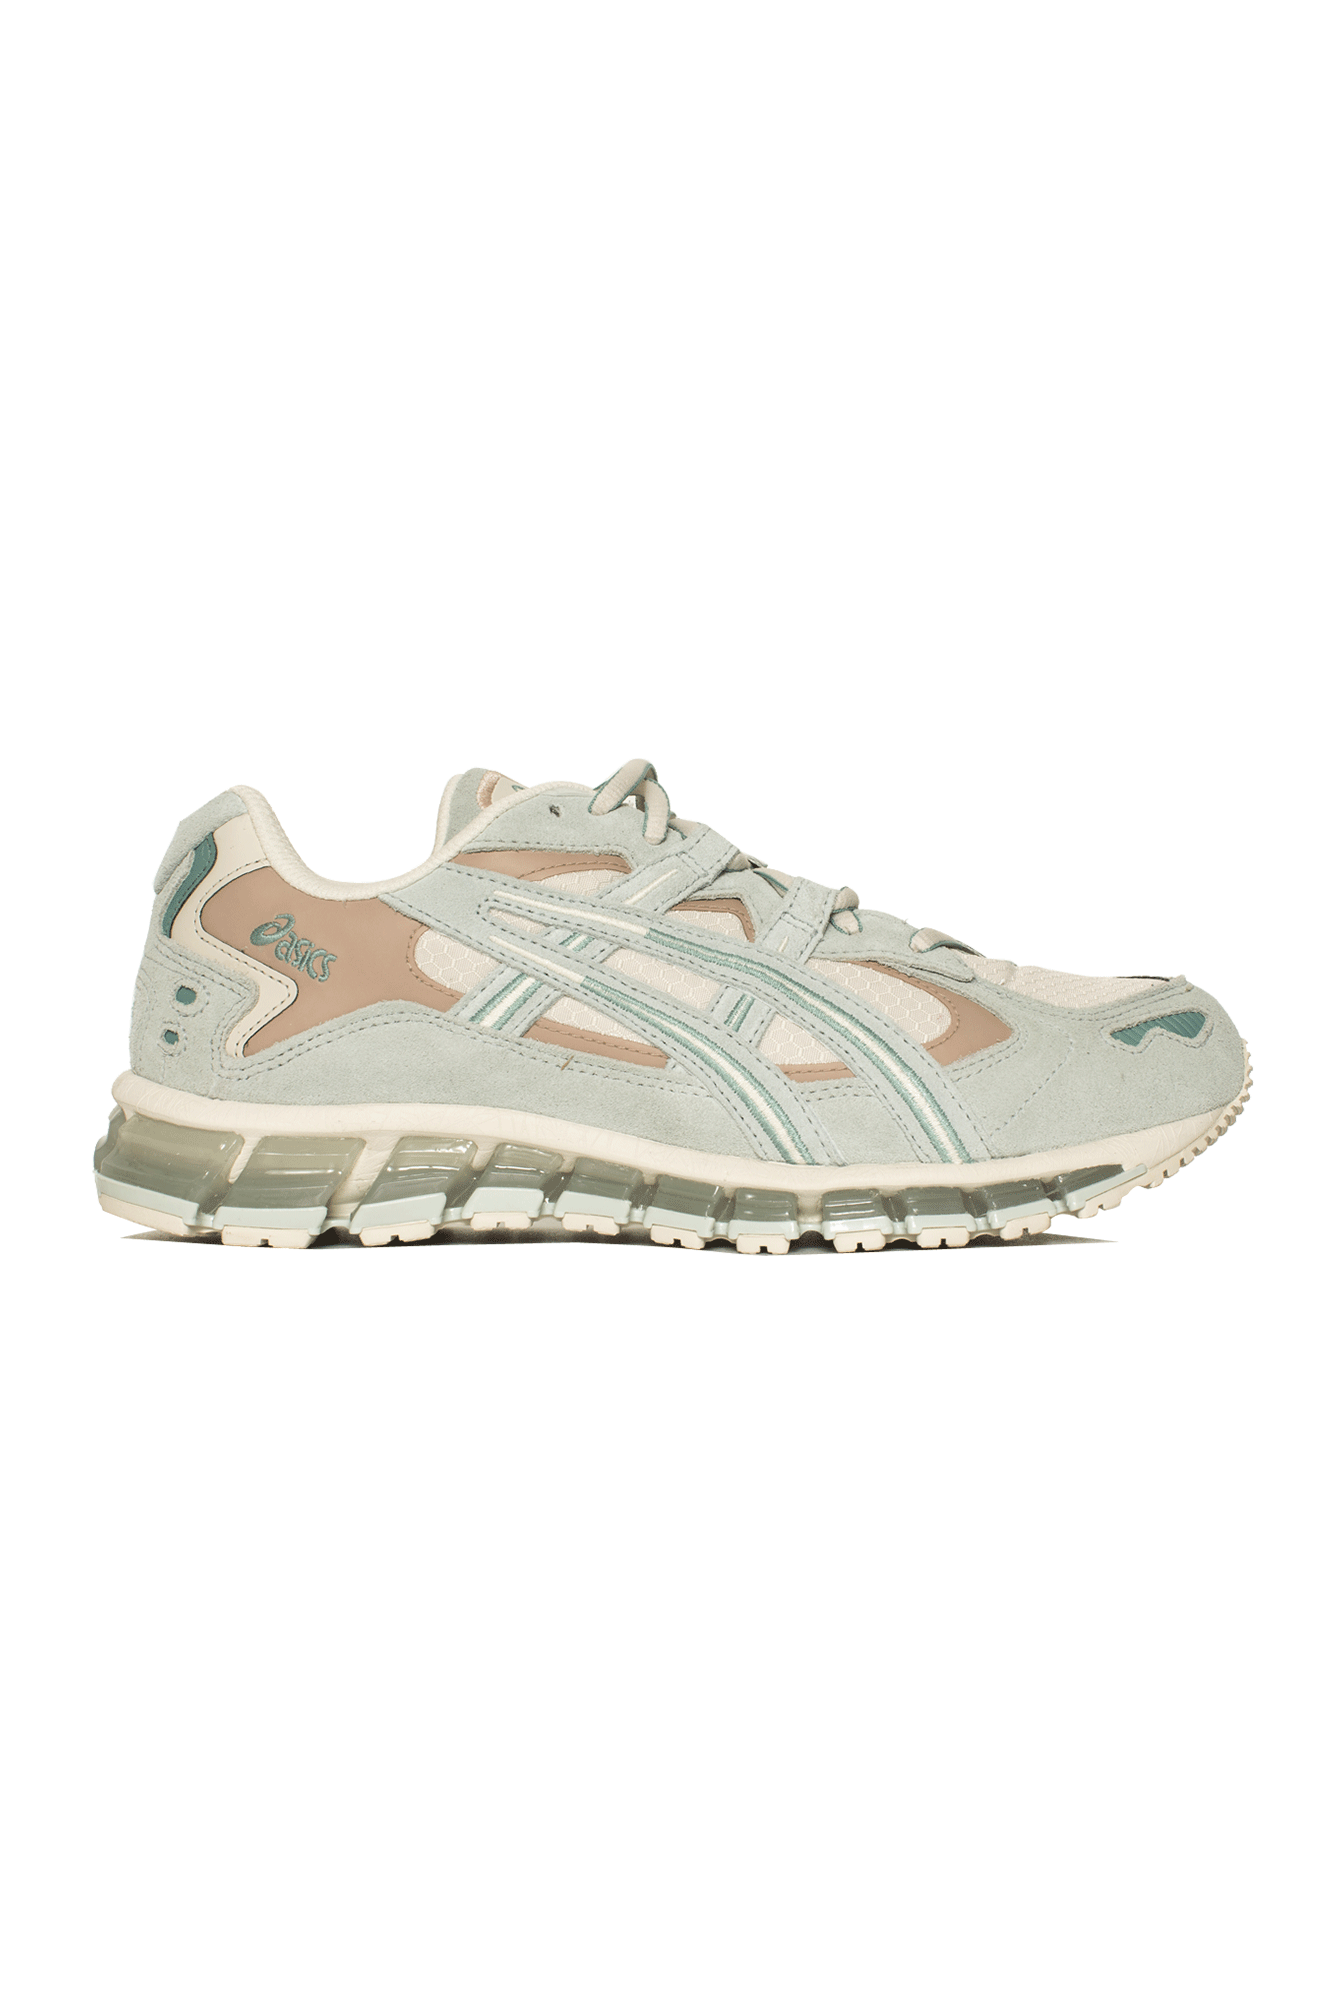 Gel-Kayano 5 360 G-TX Brown